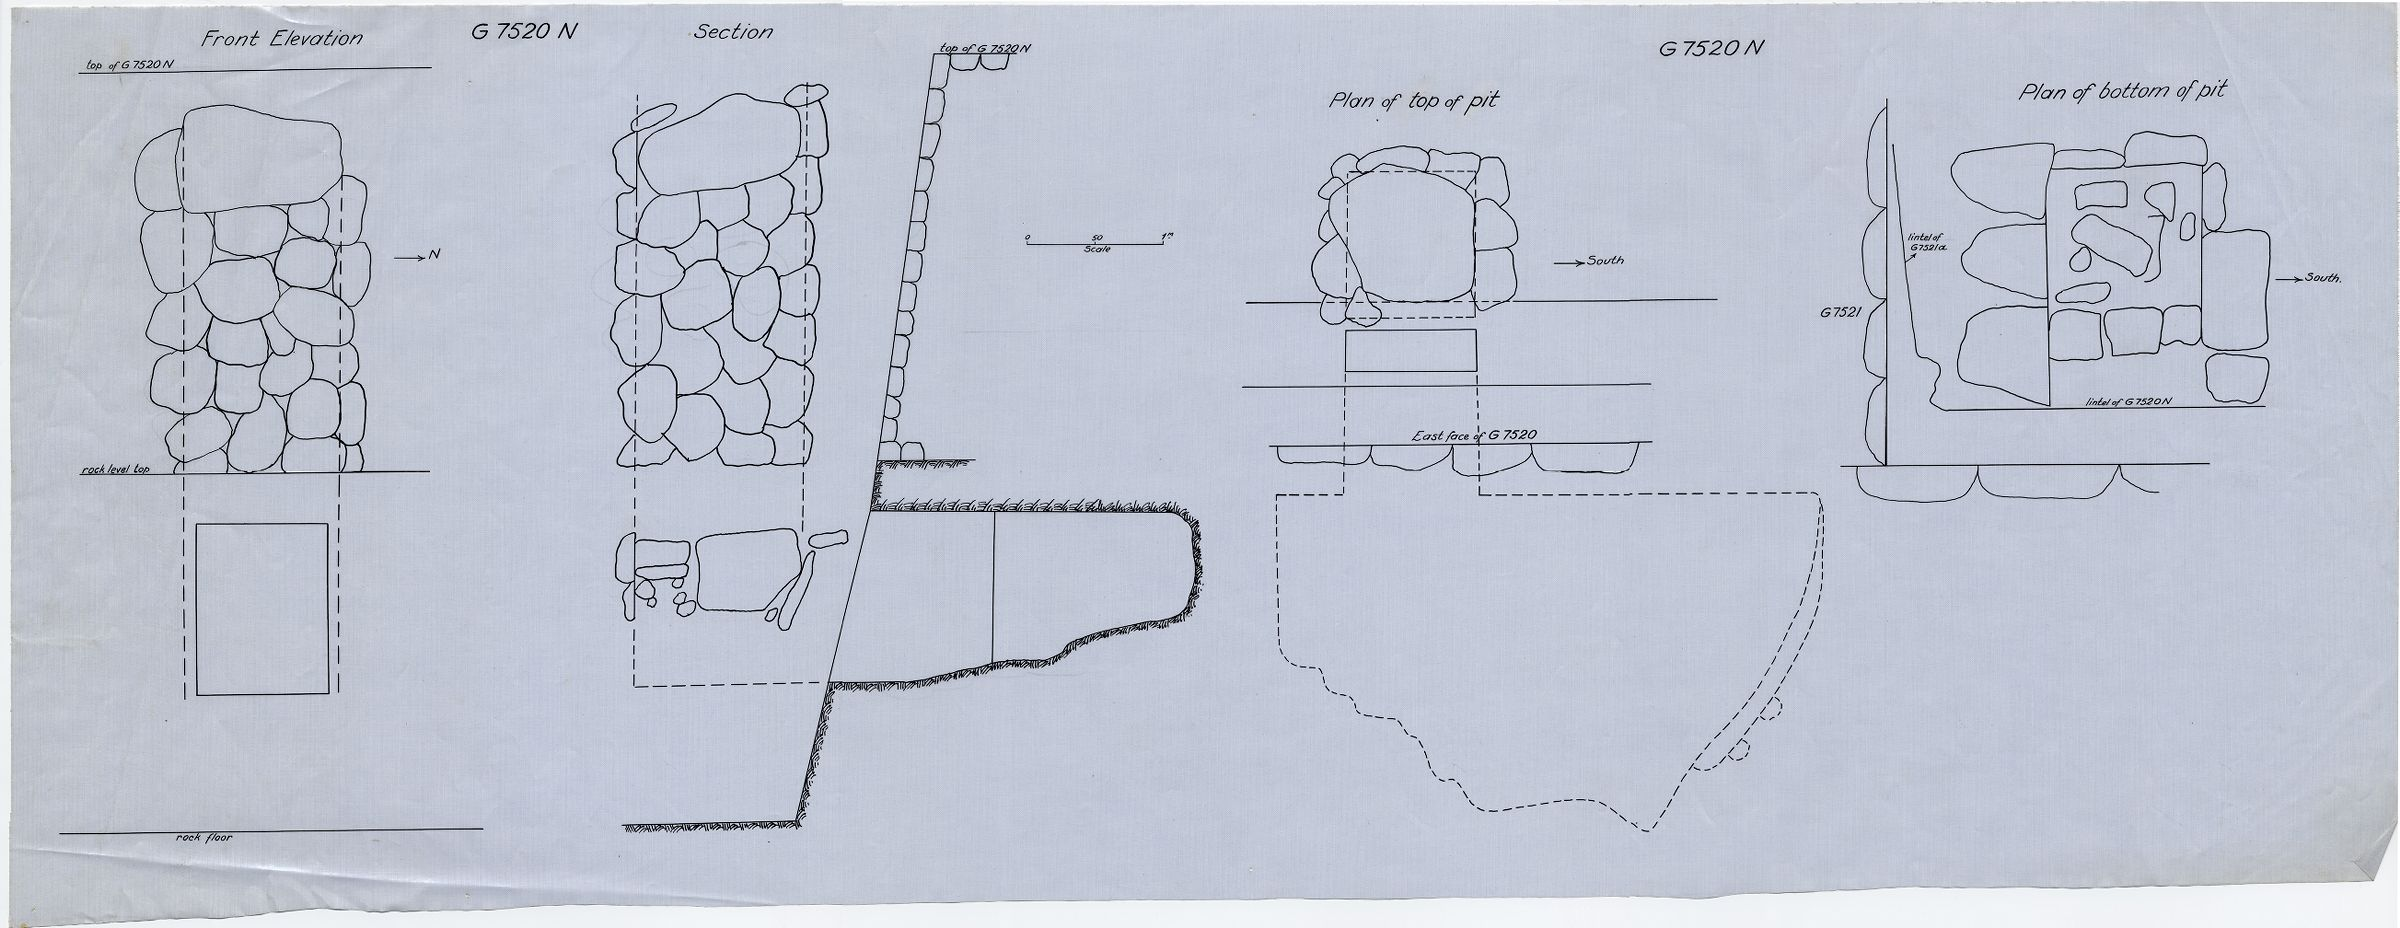 Maps and plans: G 7520, Shaft N